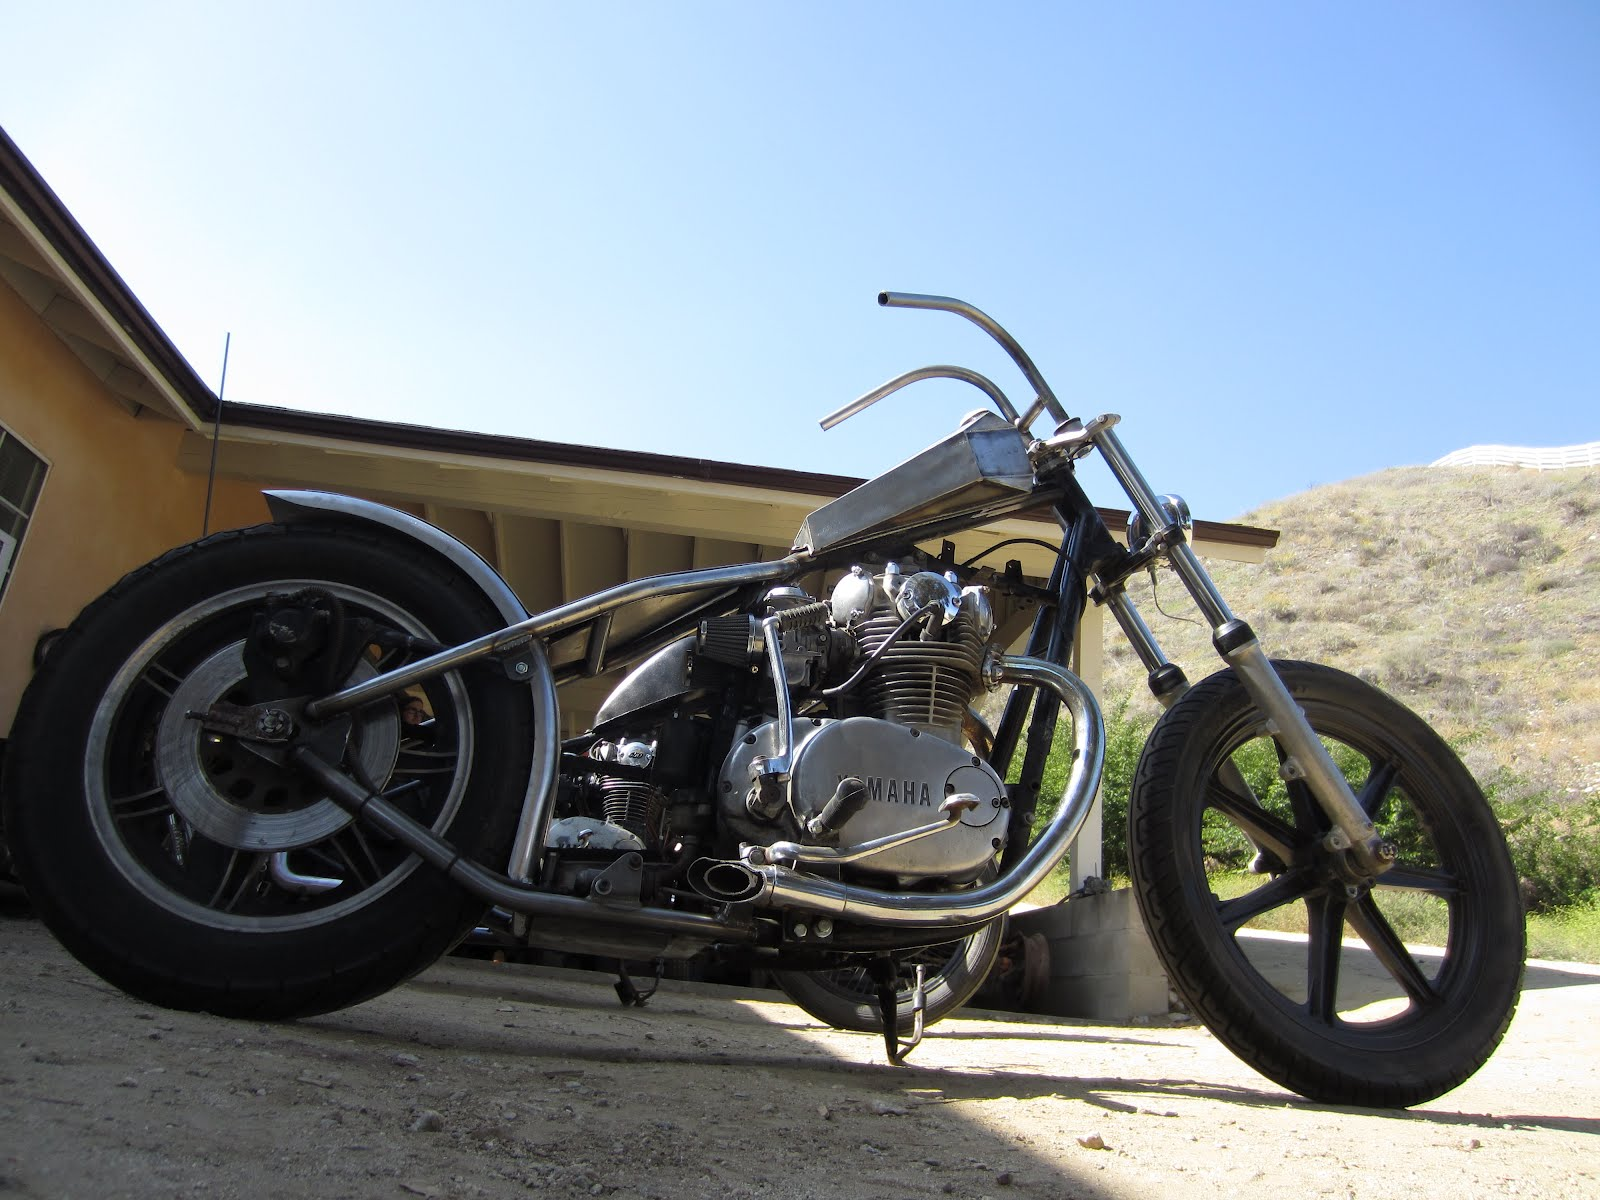 hight resolution of suzuki gs450 bobber wiring diagram 7 suzuki 450 gs carbs suzuki gs450 bobber wiring diagram